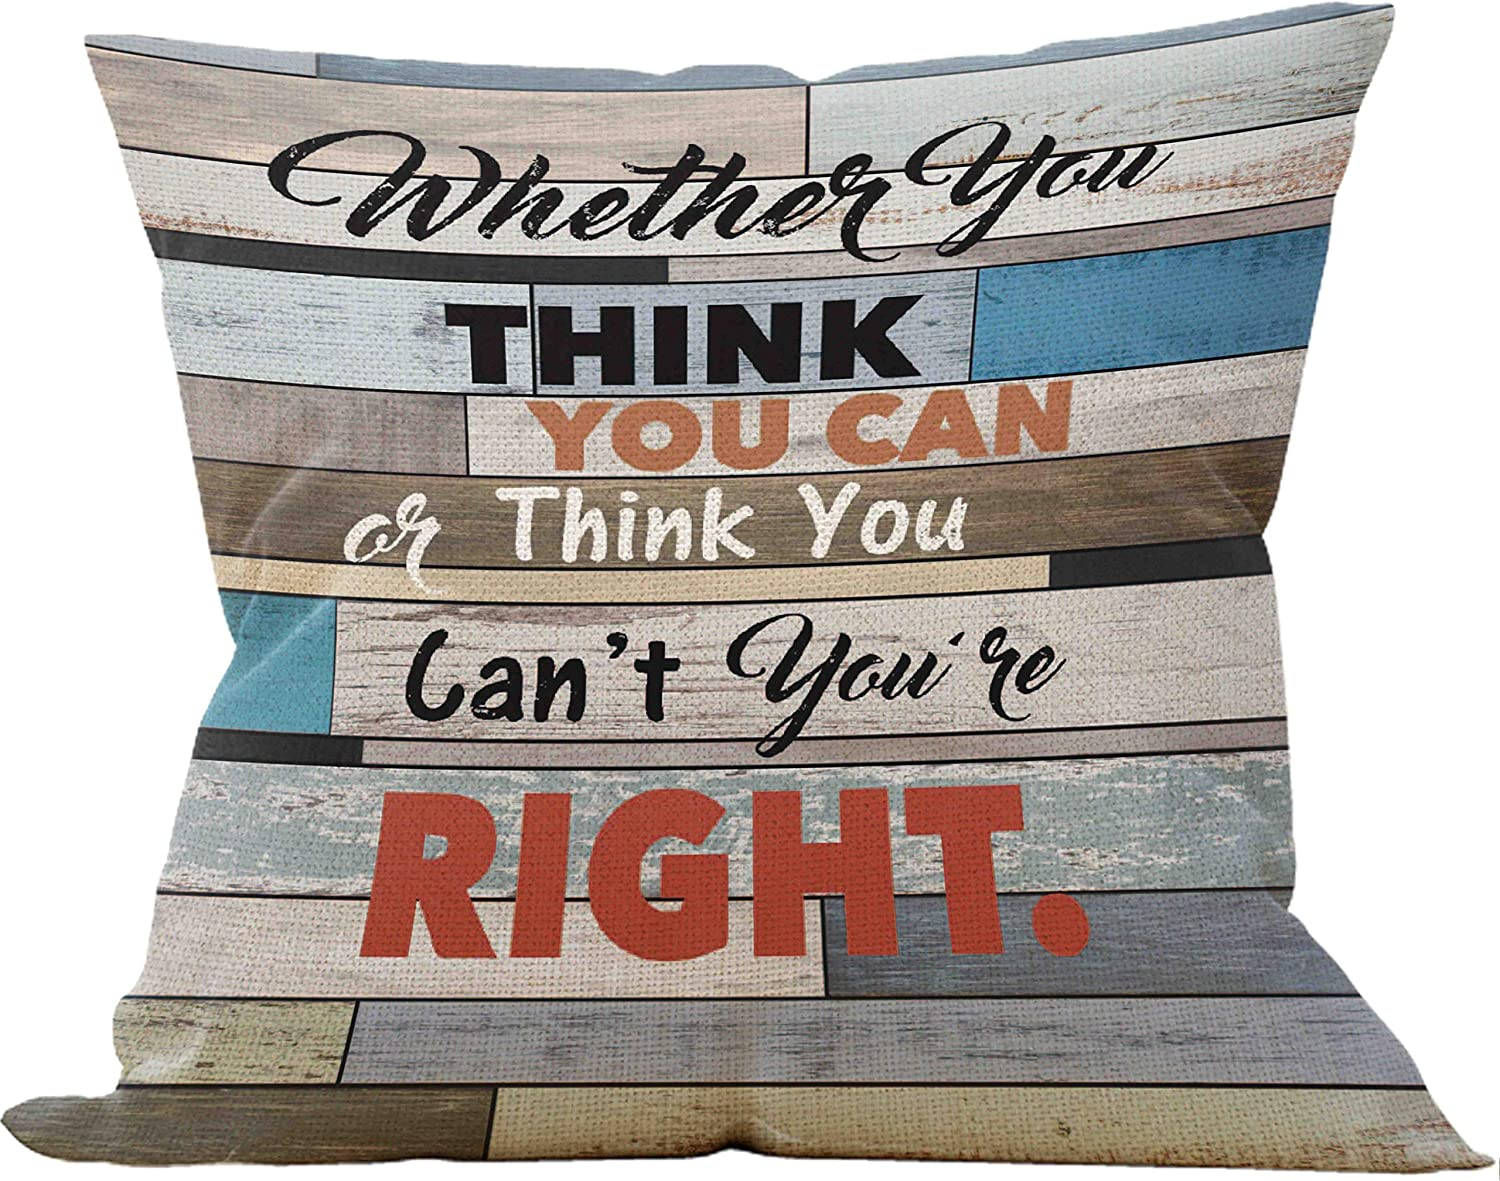 Whether You Think You Can Or Think You Can't You Are Right Best Throw Pillow Case, Office Inspirational Quotes Pillow, 18 x 18 Inch Decorative Cotton Linen Cushion Cover for Sofa Couch Office